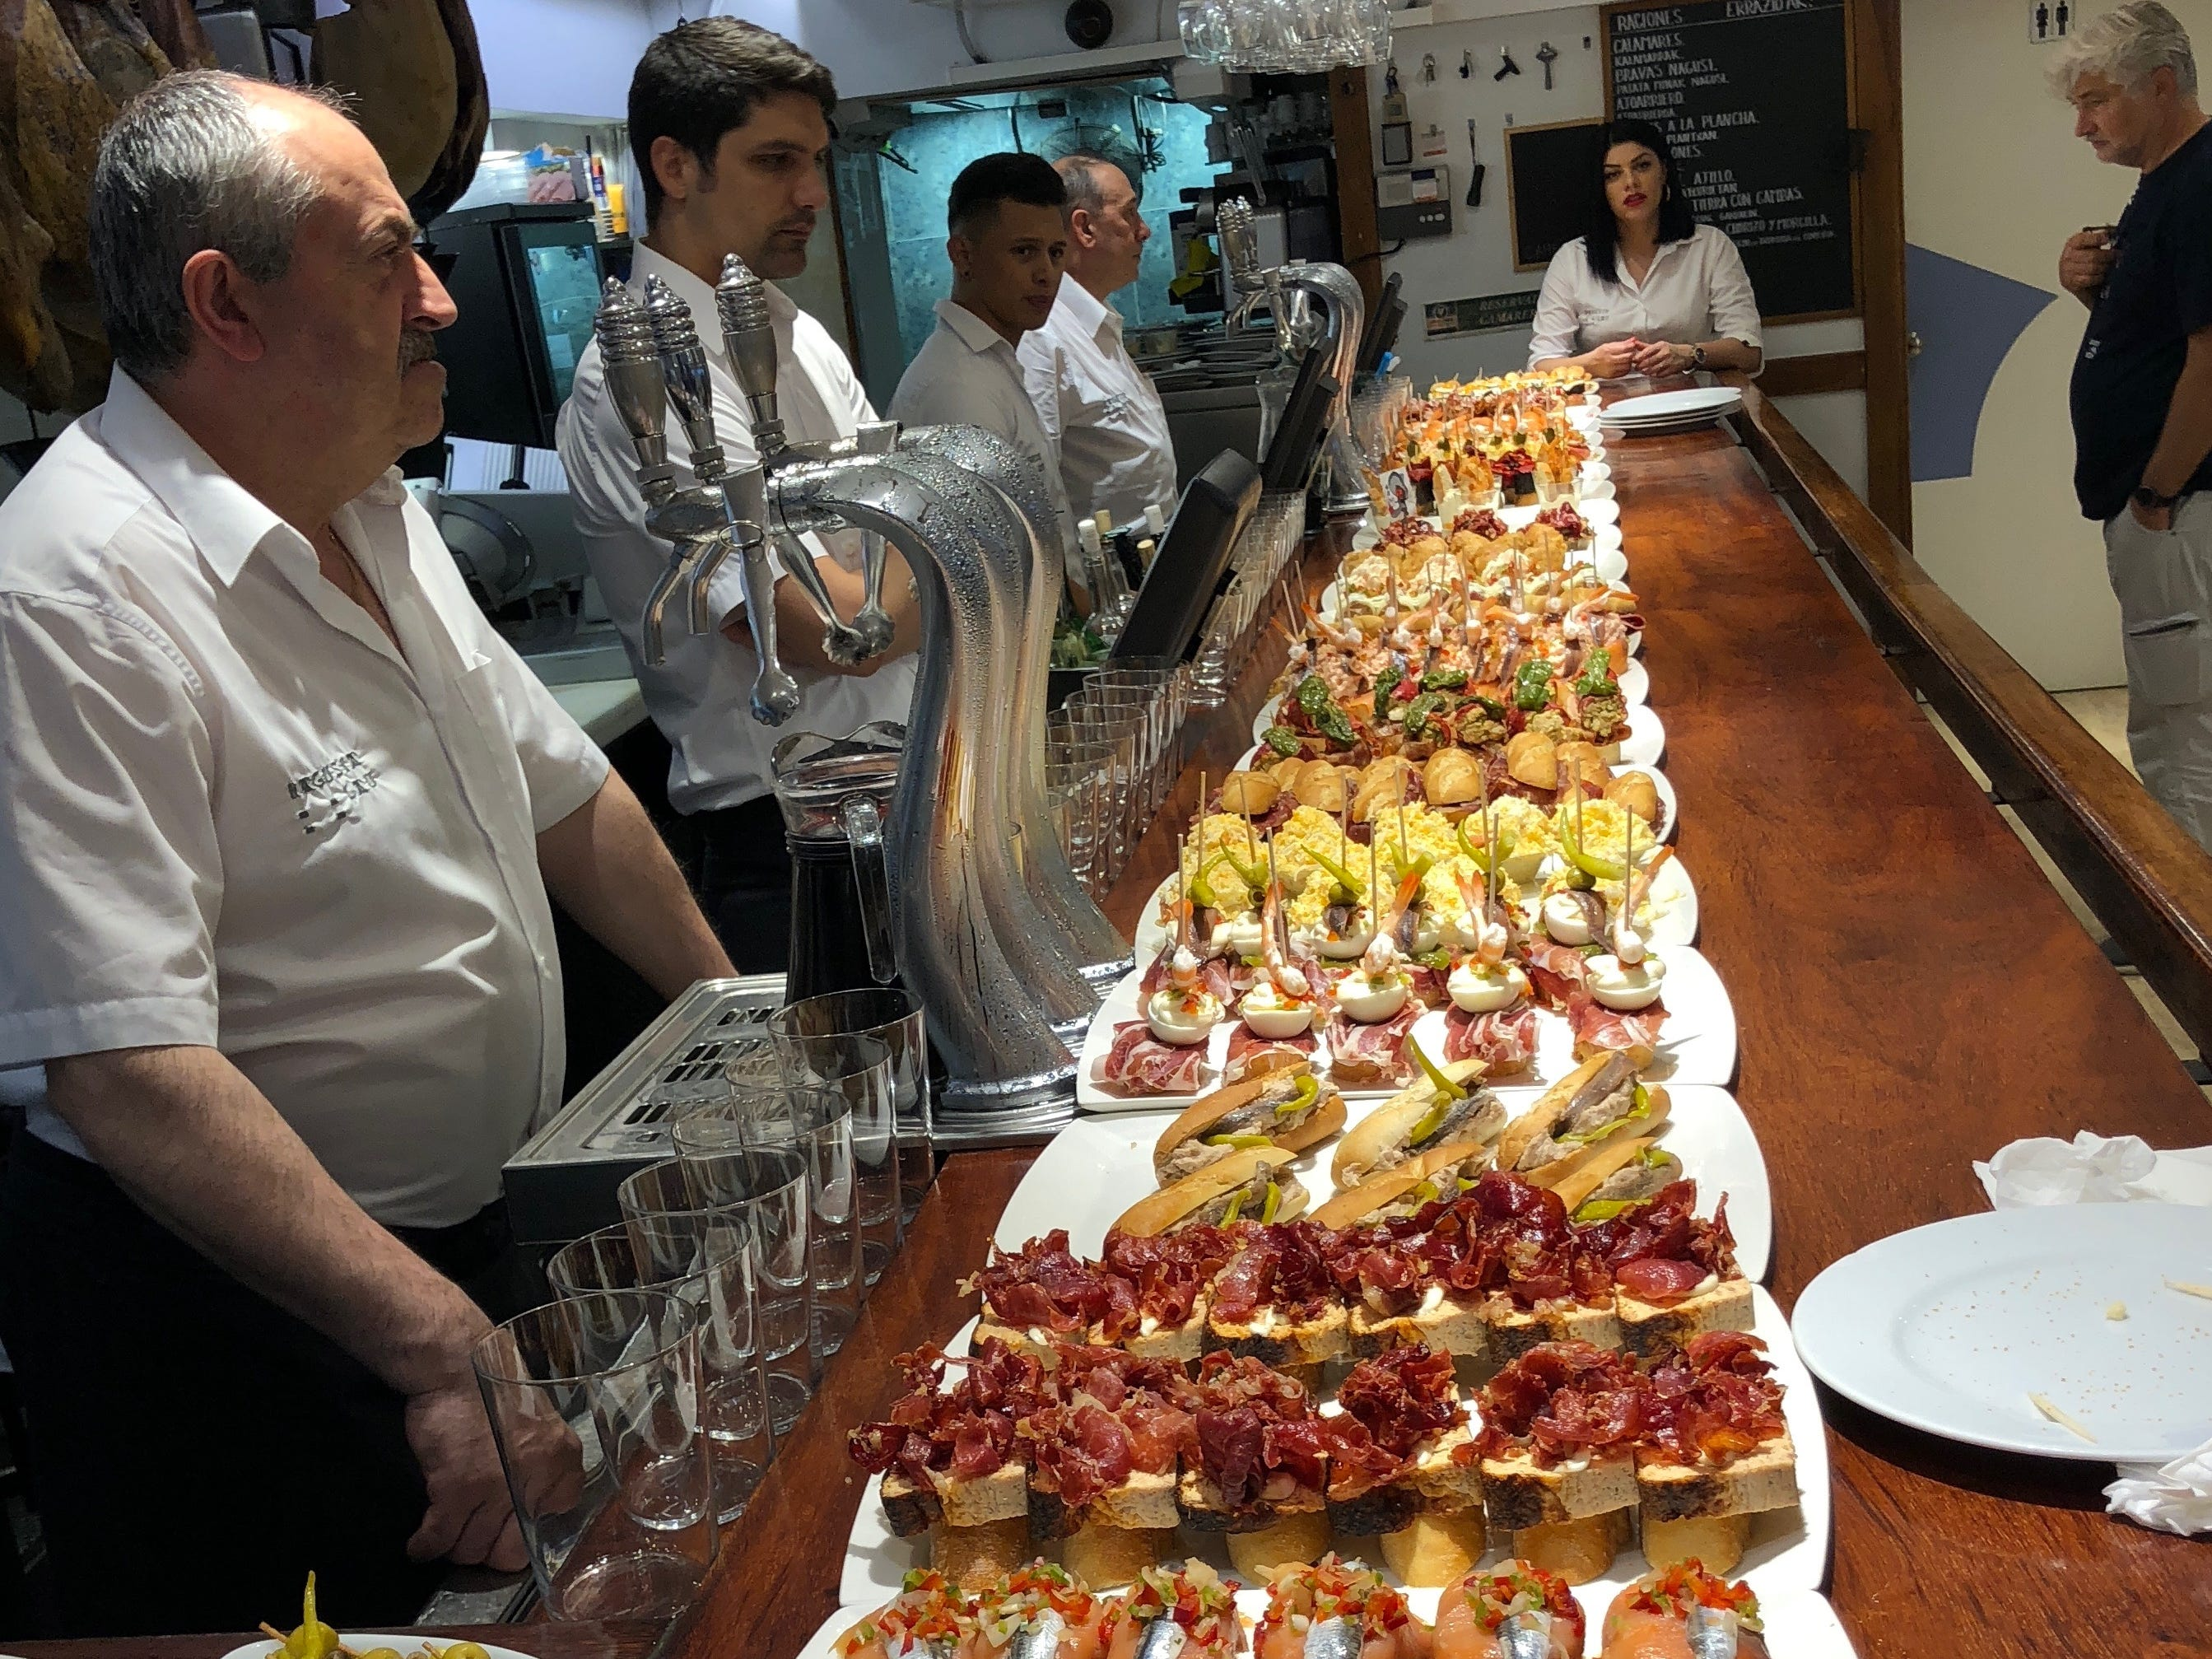 A collection of inventive pintxos at a tavern in the Old Town section of San Sebastian, Spain. A pintxos crawl is a nightly occurrence here for residents and tourists alike